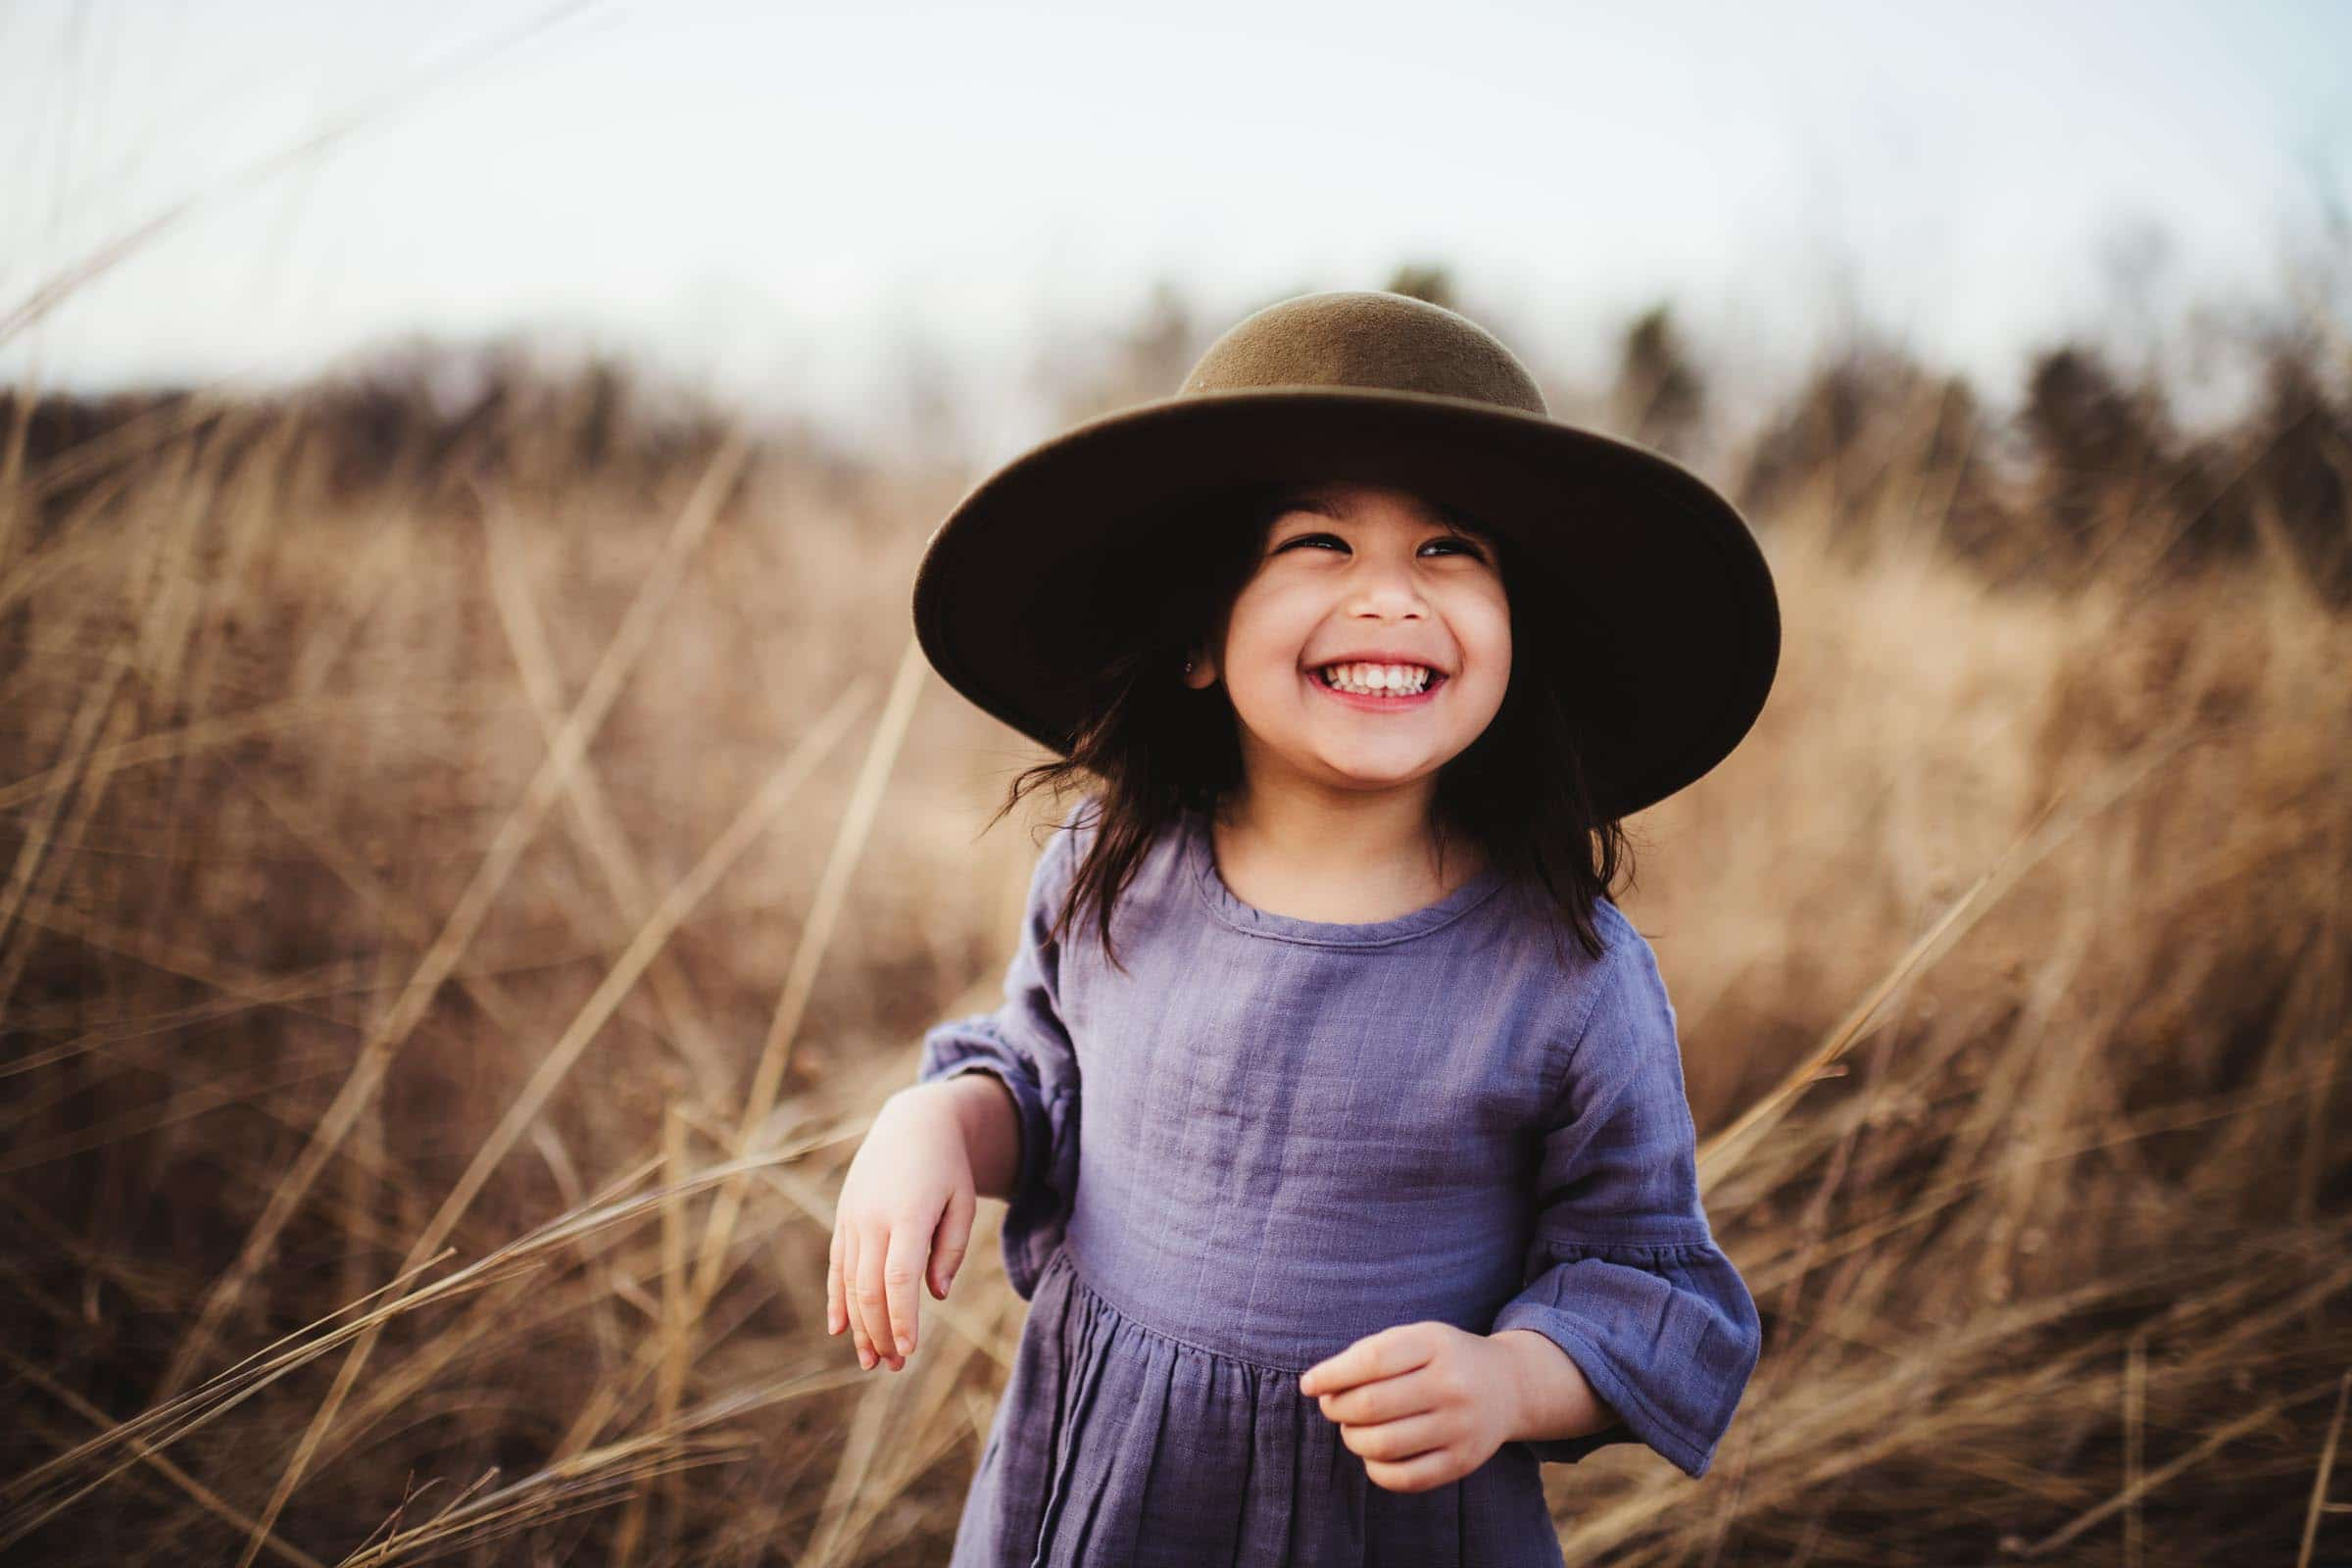 Little Girl in Hat Smiling